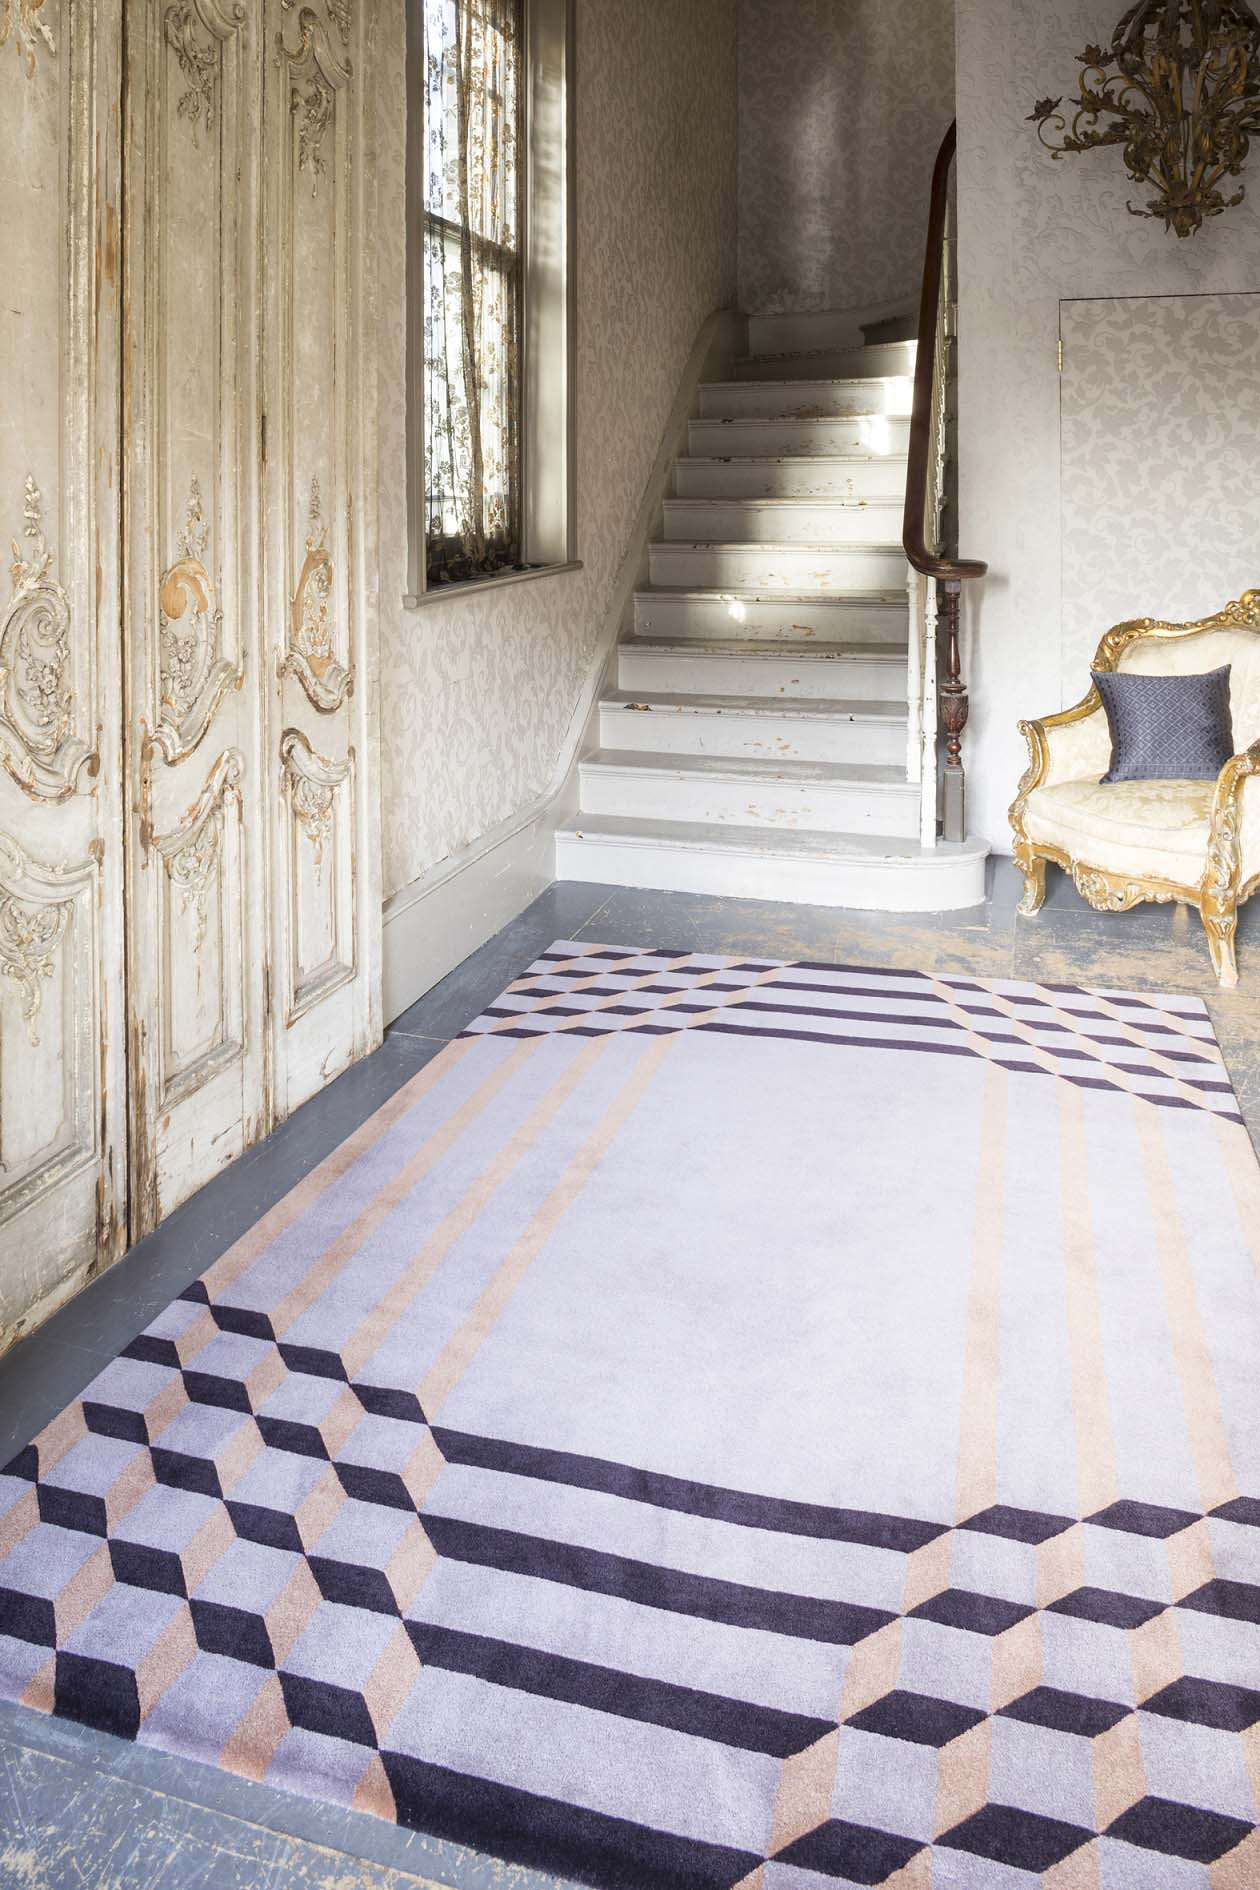 Top Floor Rugs: Crawford rug from the Jazz Age Collection